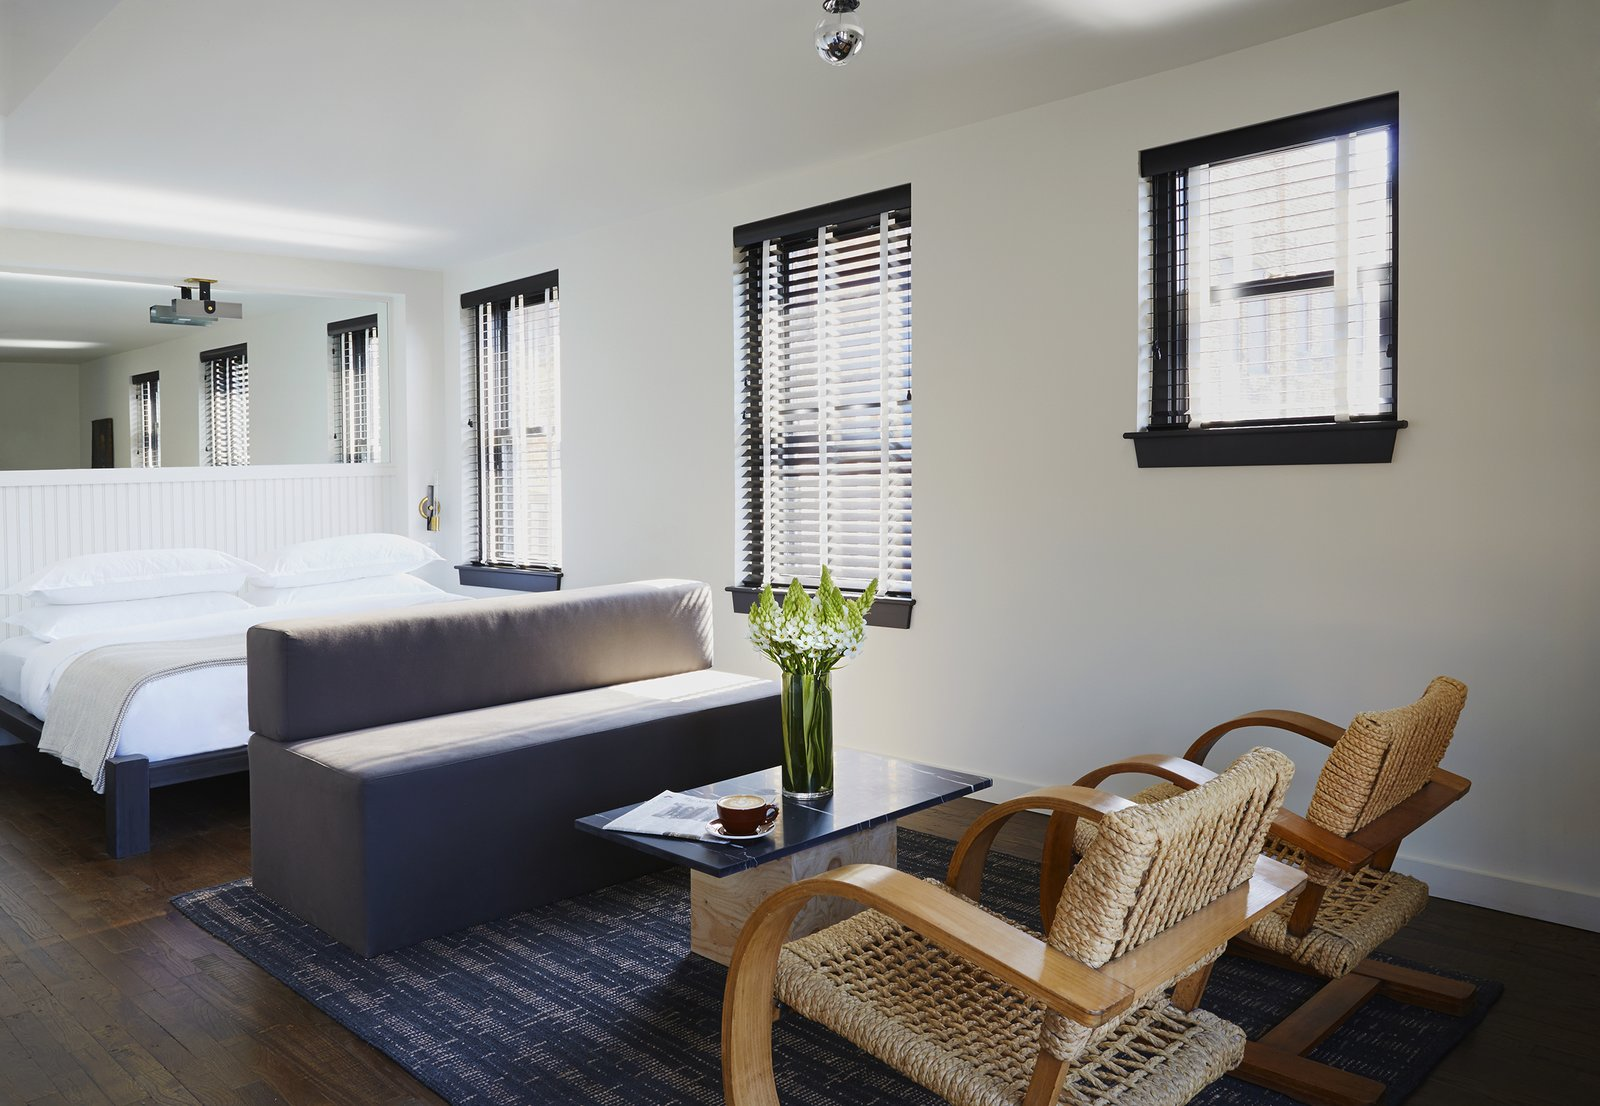 The Dean Hotel in Providence, Rhode Island, was designed Ari Heckman—his design firm ASH NYC used Matouk bedding in every room.  Photo 12 of 12 in How Much Should You Spend on a Duvet? from This Boutique Hotel Loves its City Like No Other